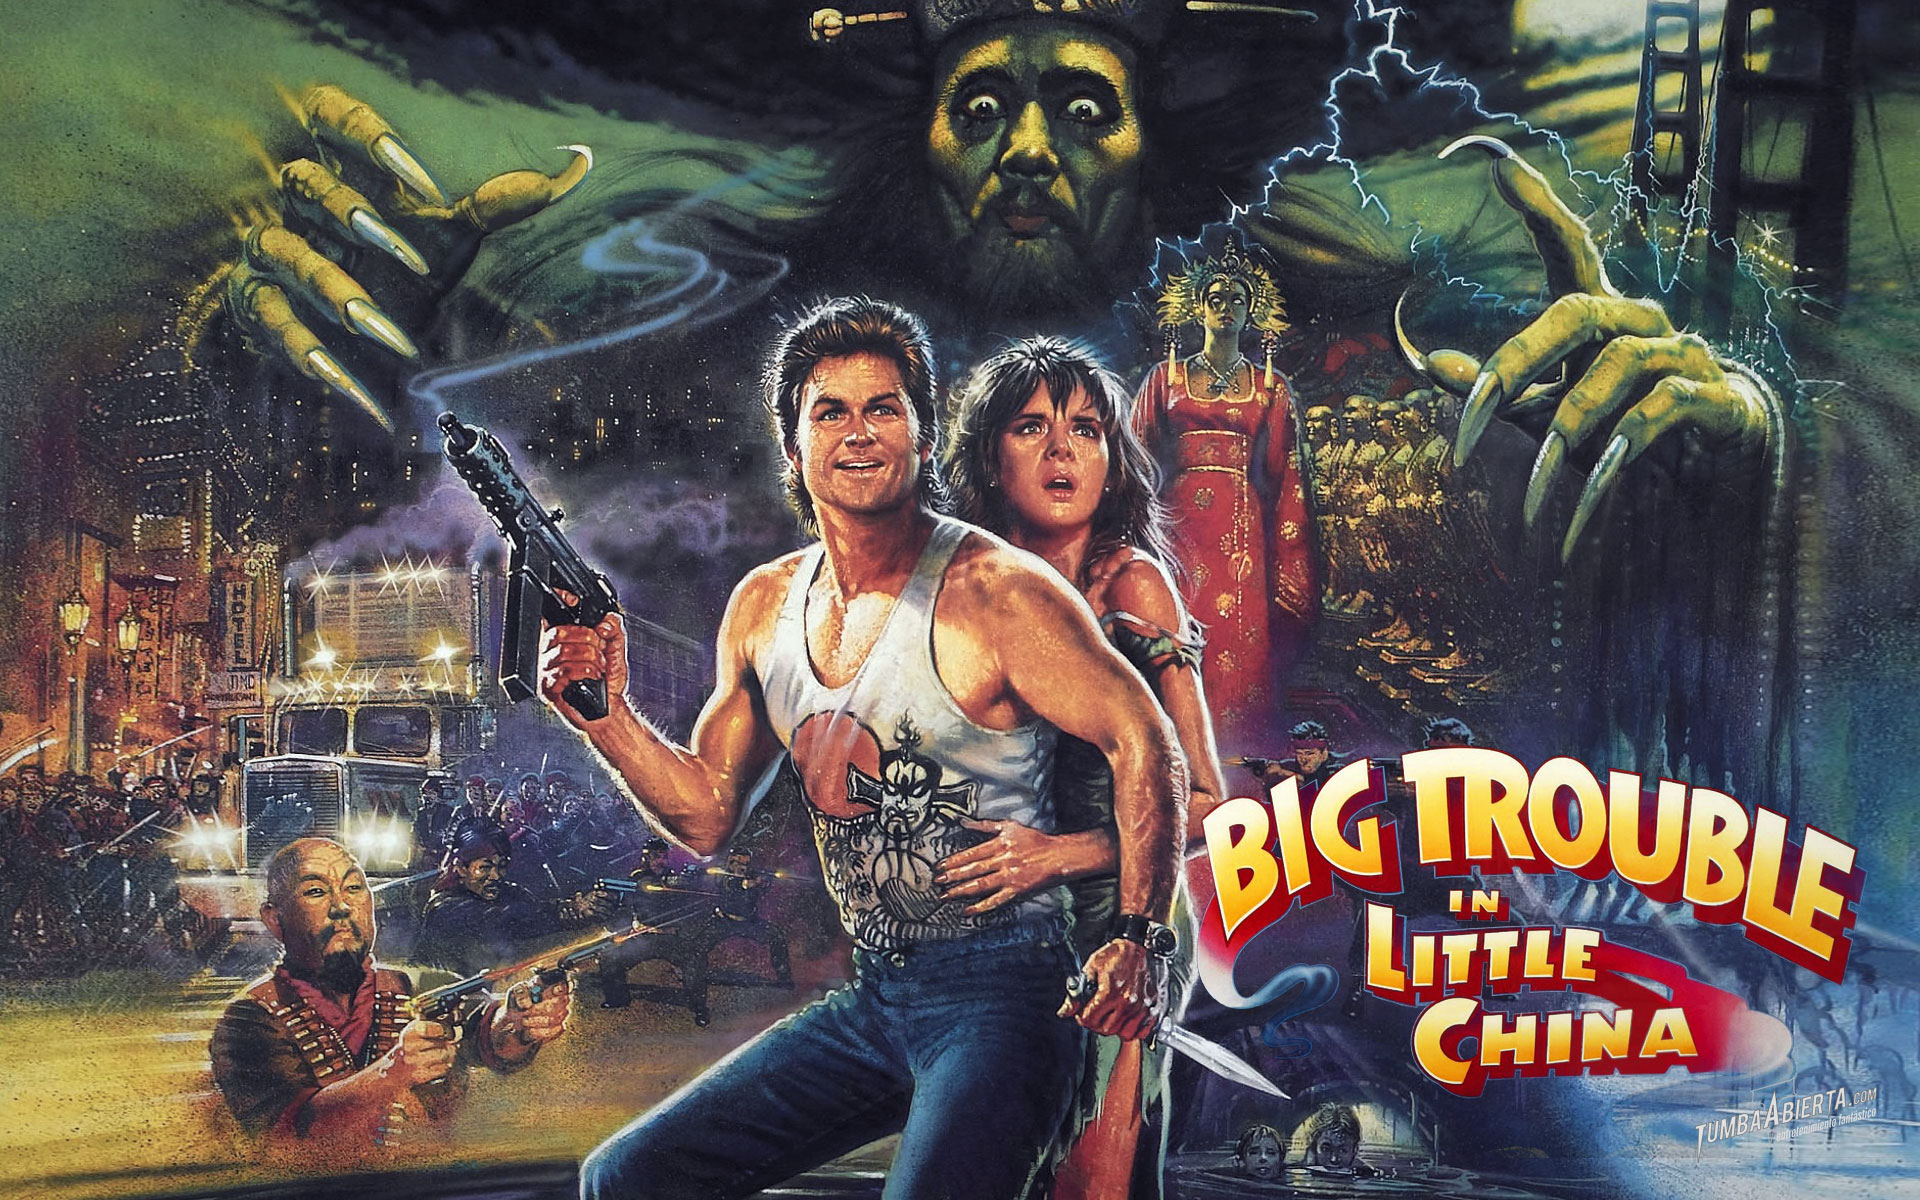 HQ Big Trouble In Little China Wallpapers | File 641.75Kb